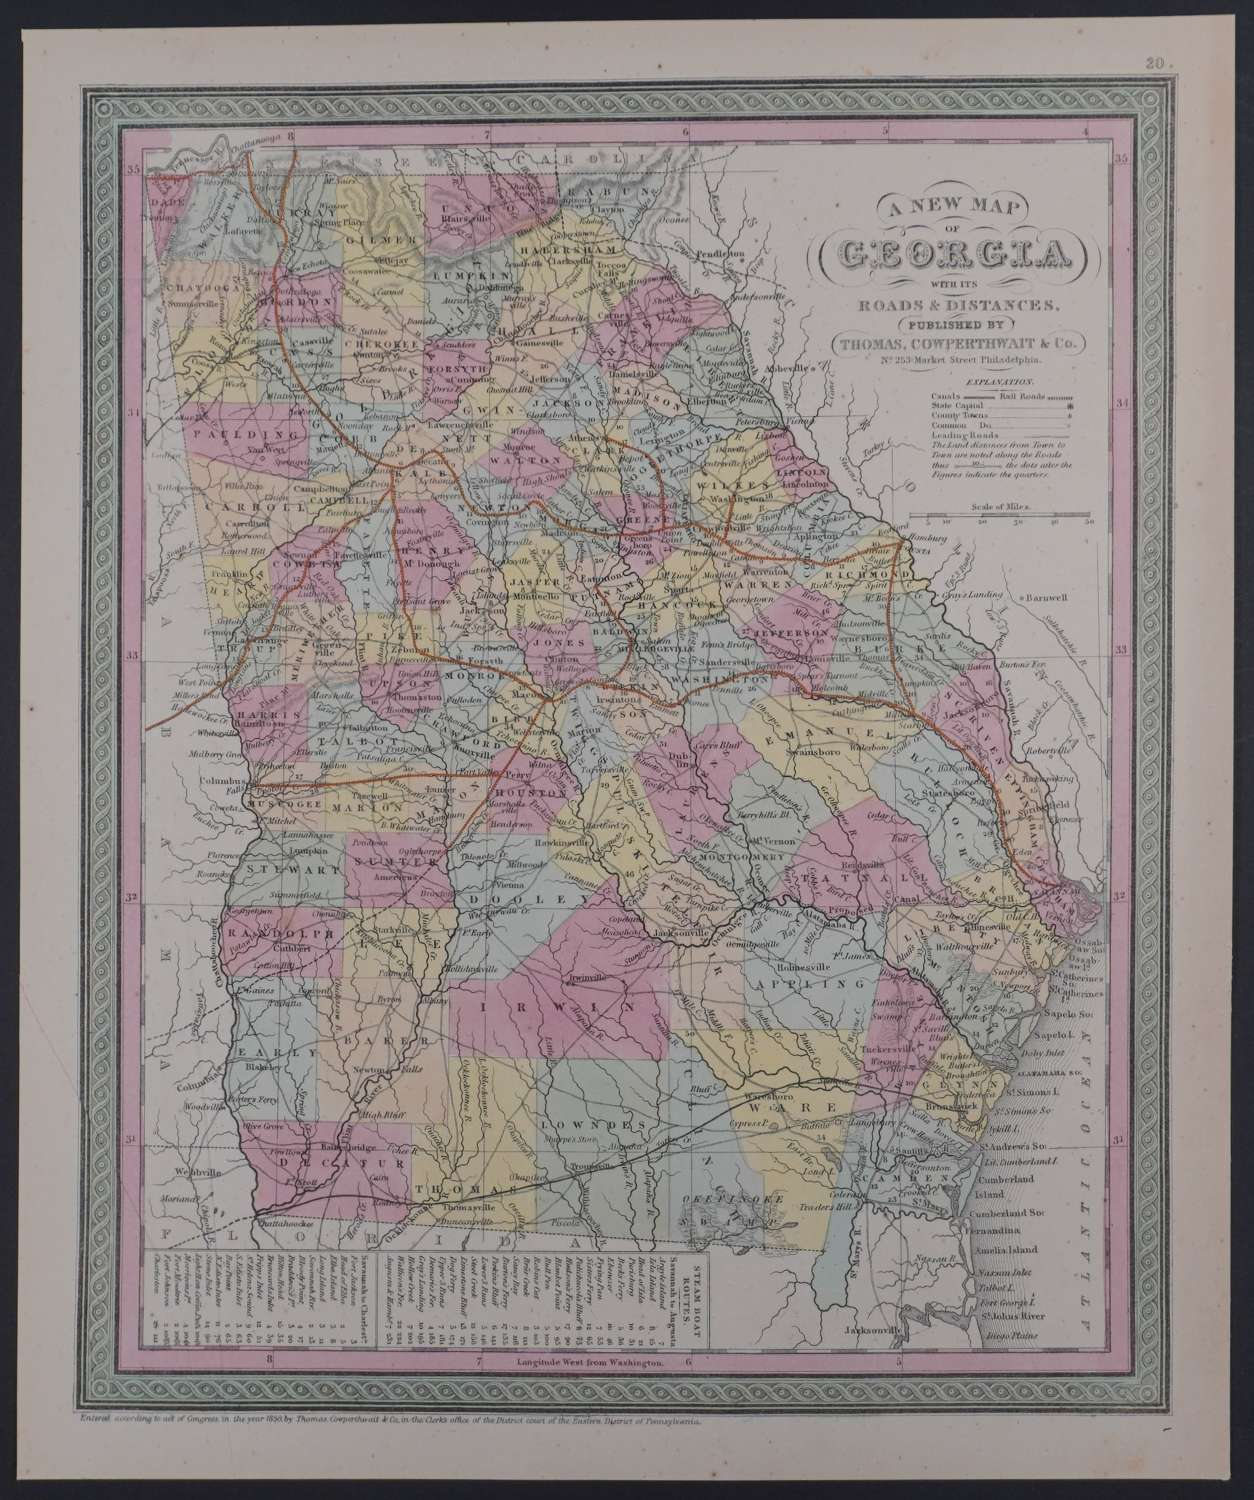 A New Map of Georgia by Thomas Cowperthwait